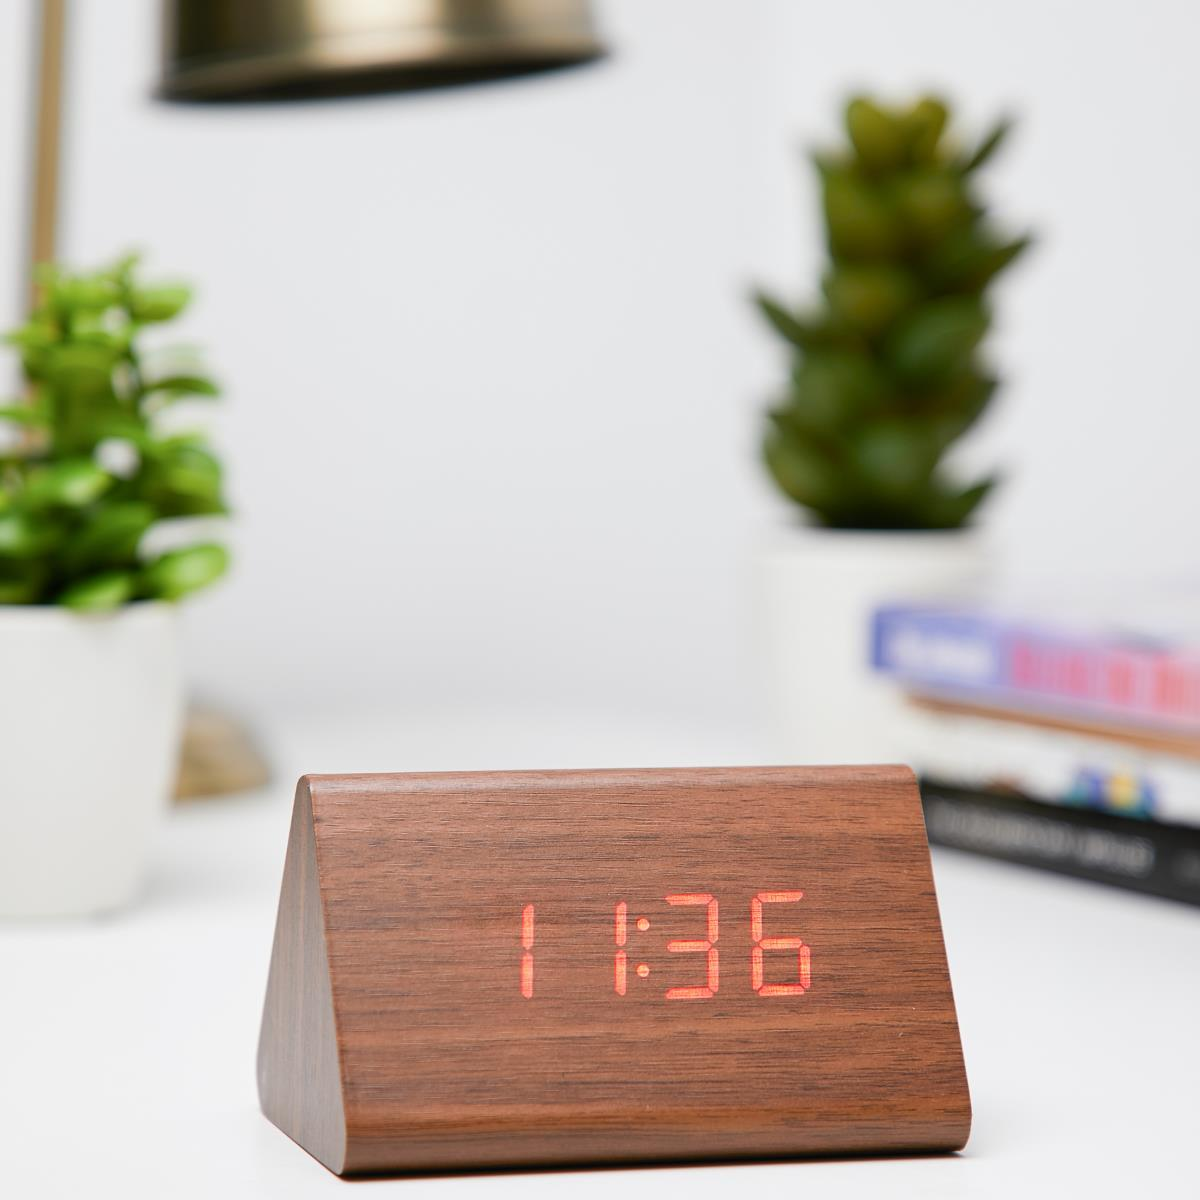 Checkmate LED Wood Tri Bar Desk Clock Red 12cm VGY 828R 11